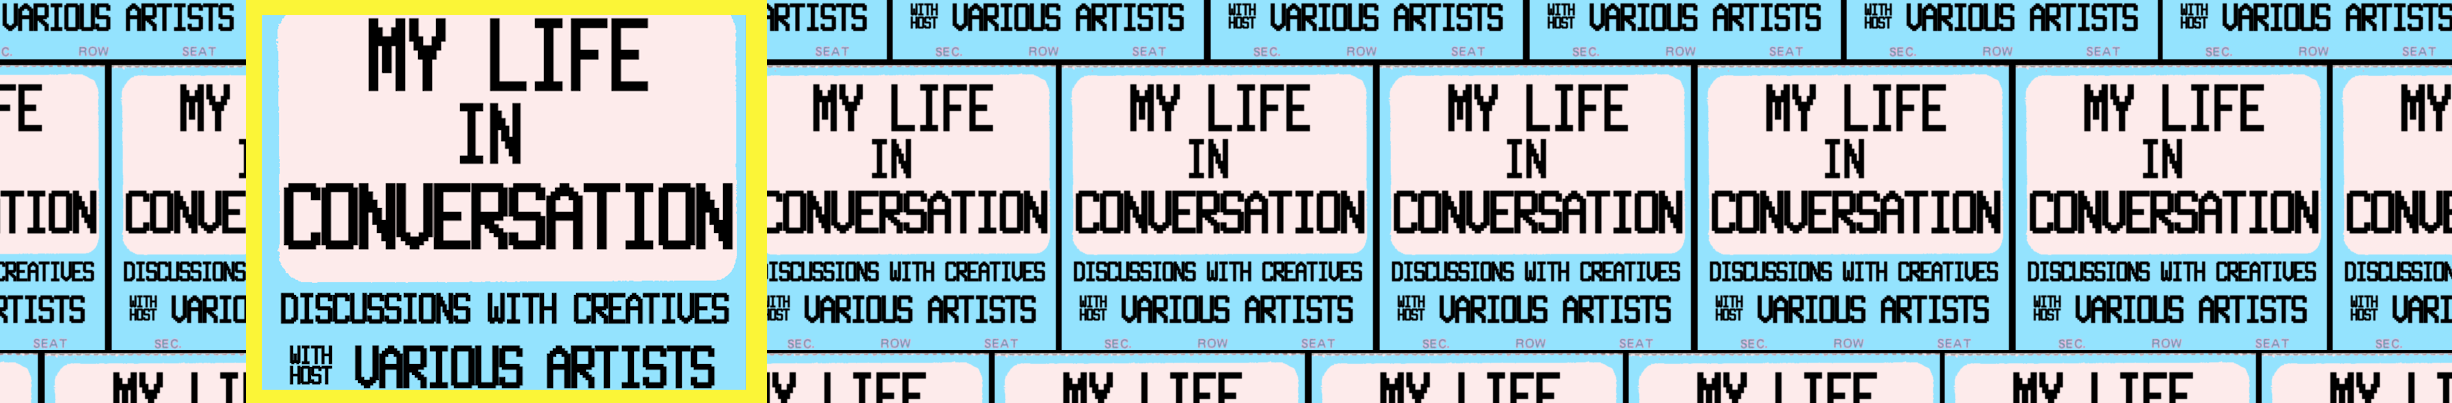 mylifeinconversation.com home page, My Life In Conversation.com, mylifeinconcert.com, various artists